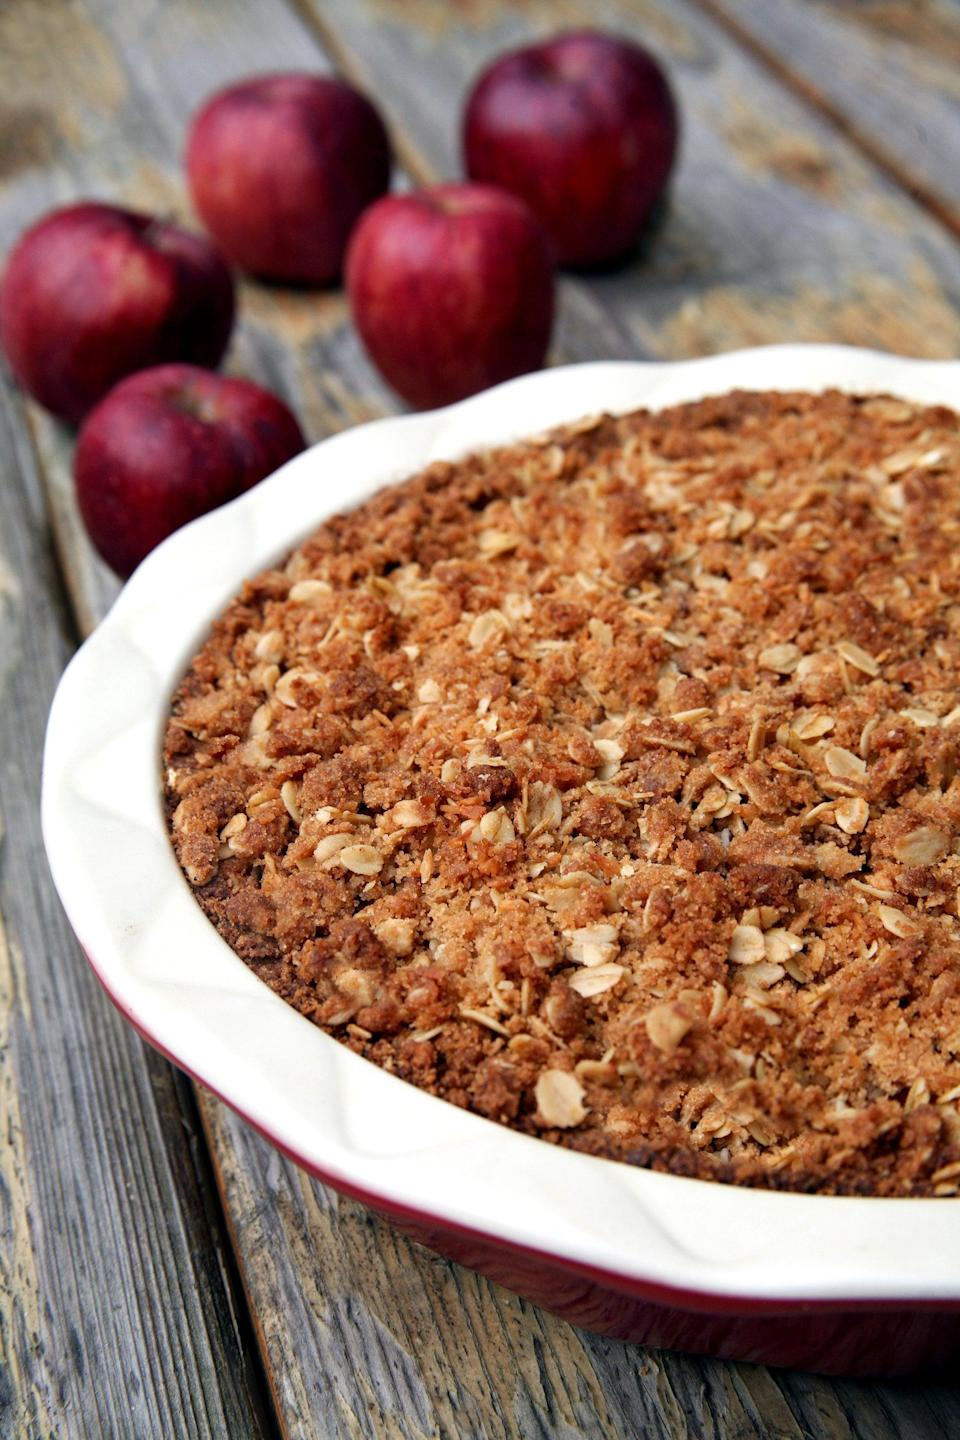 "<p>Life is full of too many tough decisions, so if you can't choose between baking apple pie or apple crisp, then don't! This lightened-up recipe marries these two traditional desserts into one glorious, warm, and spicy treat that you'll feel proud bringing to your next holiday dinner.</p> <p><strong>Get the recipe:</strong> <a href=""https://www.popsugar.com/fitness/Vegan-Apple-Pie-36081996"" class=""link rapid-noclick-resp"" rel=""nofollow noopener"" target=""_blank"" data-ylk=""slk:apple coconut crumble pie"">apple coconut crumble pie</a></p>"